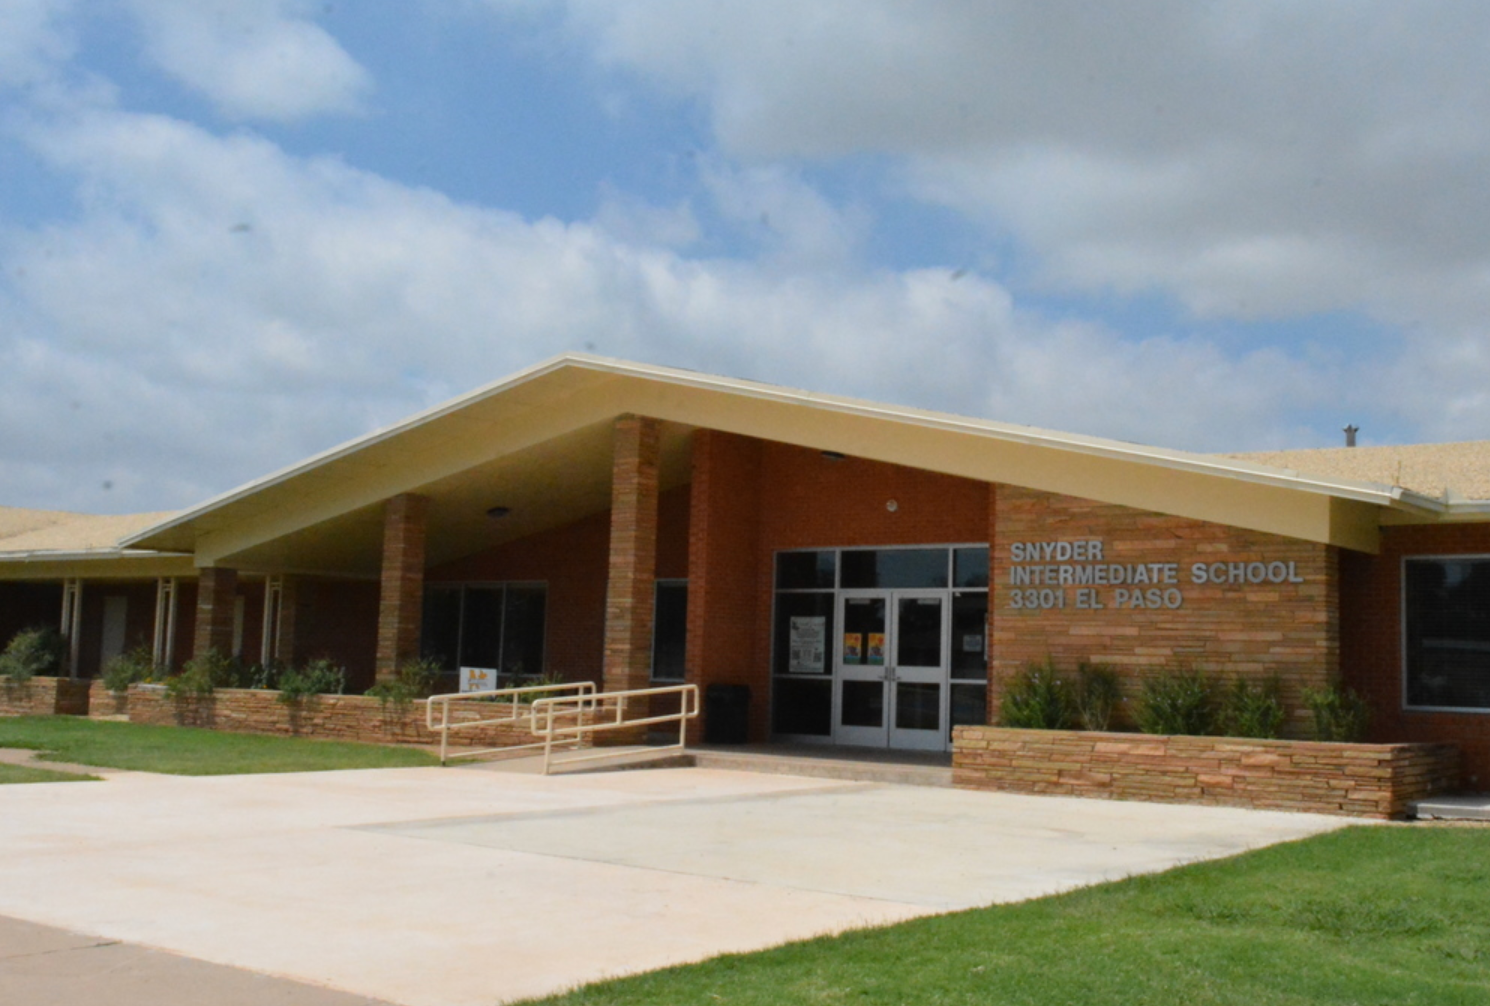 Snyder Intermediate